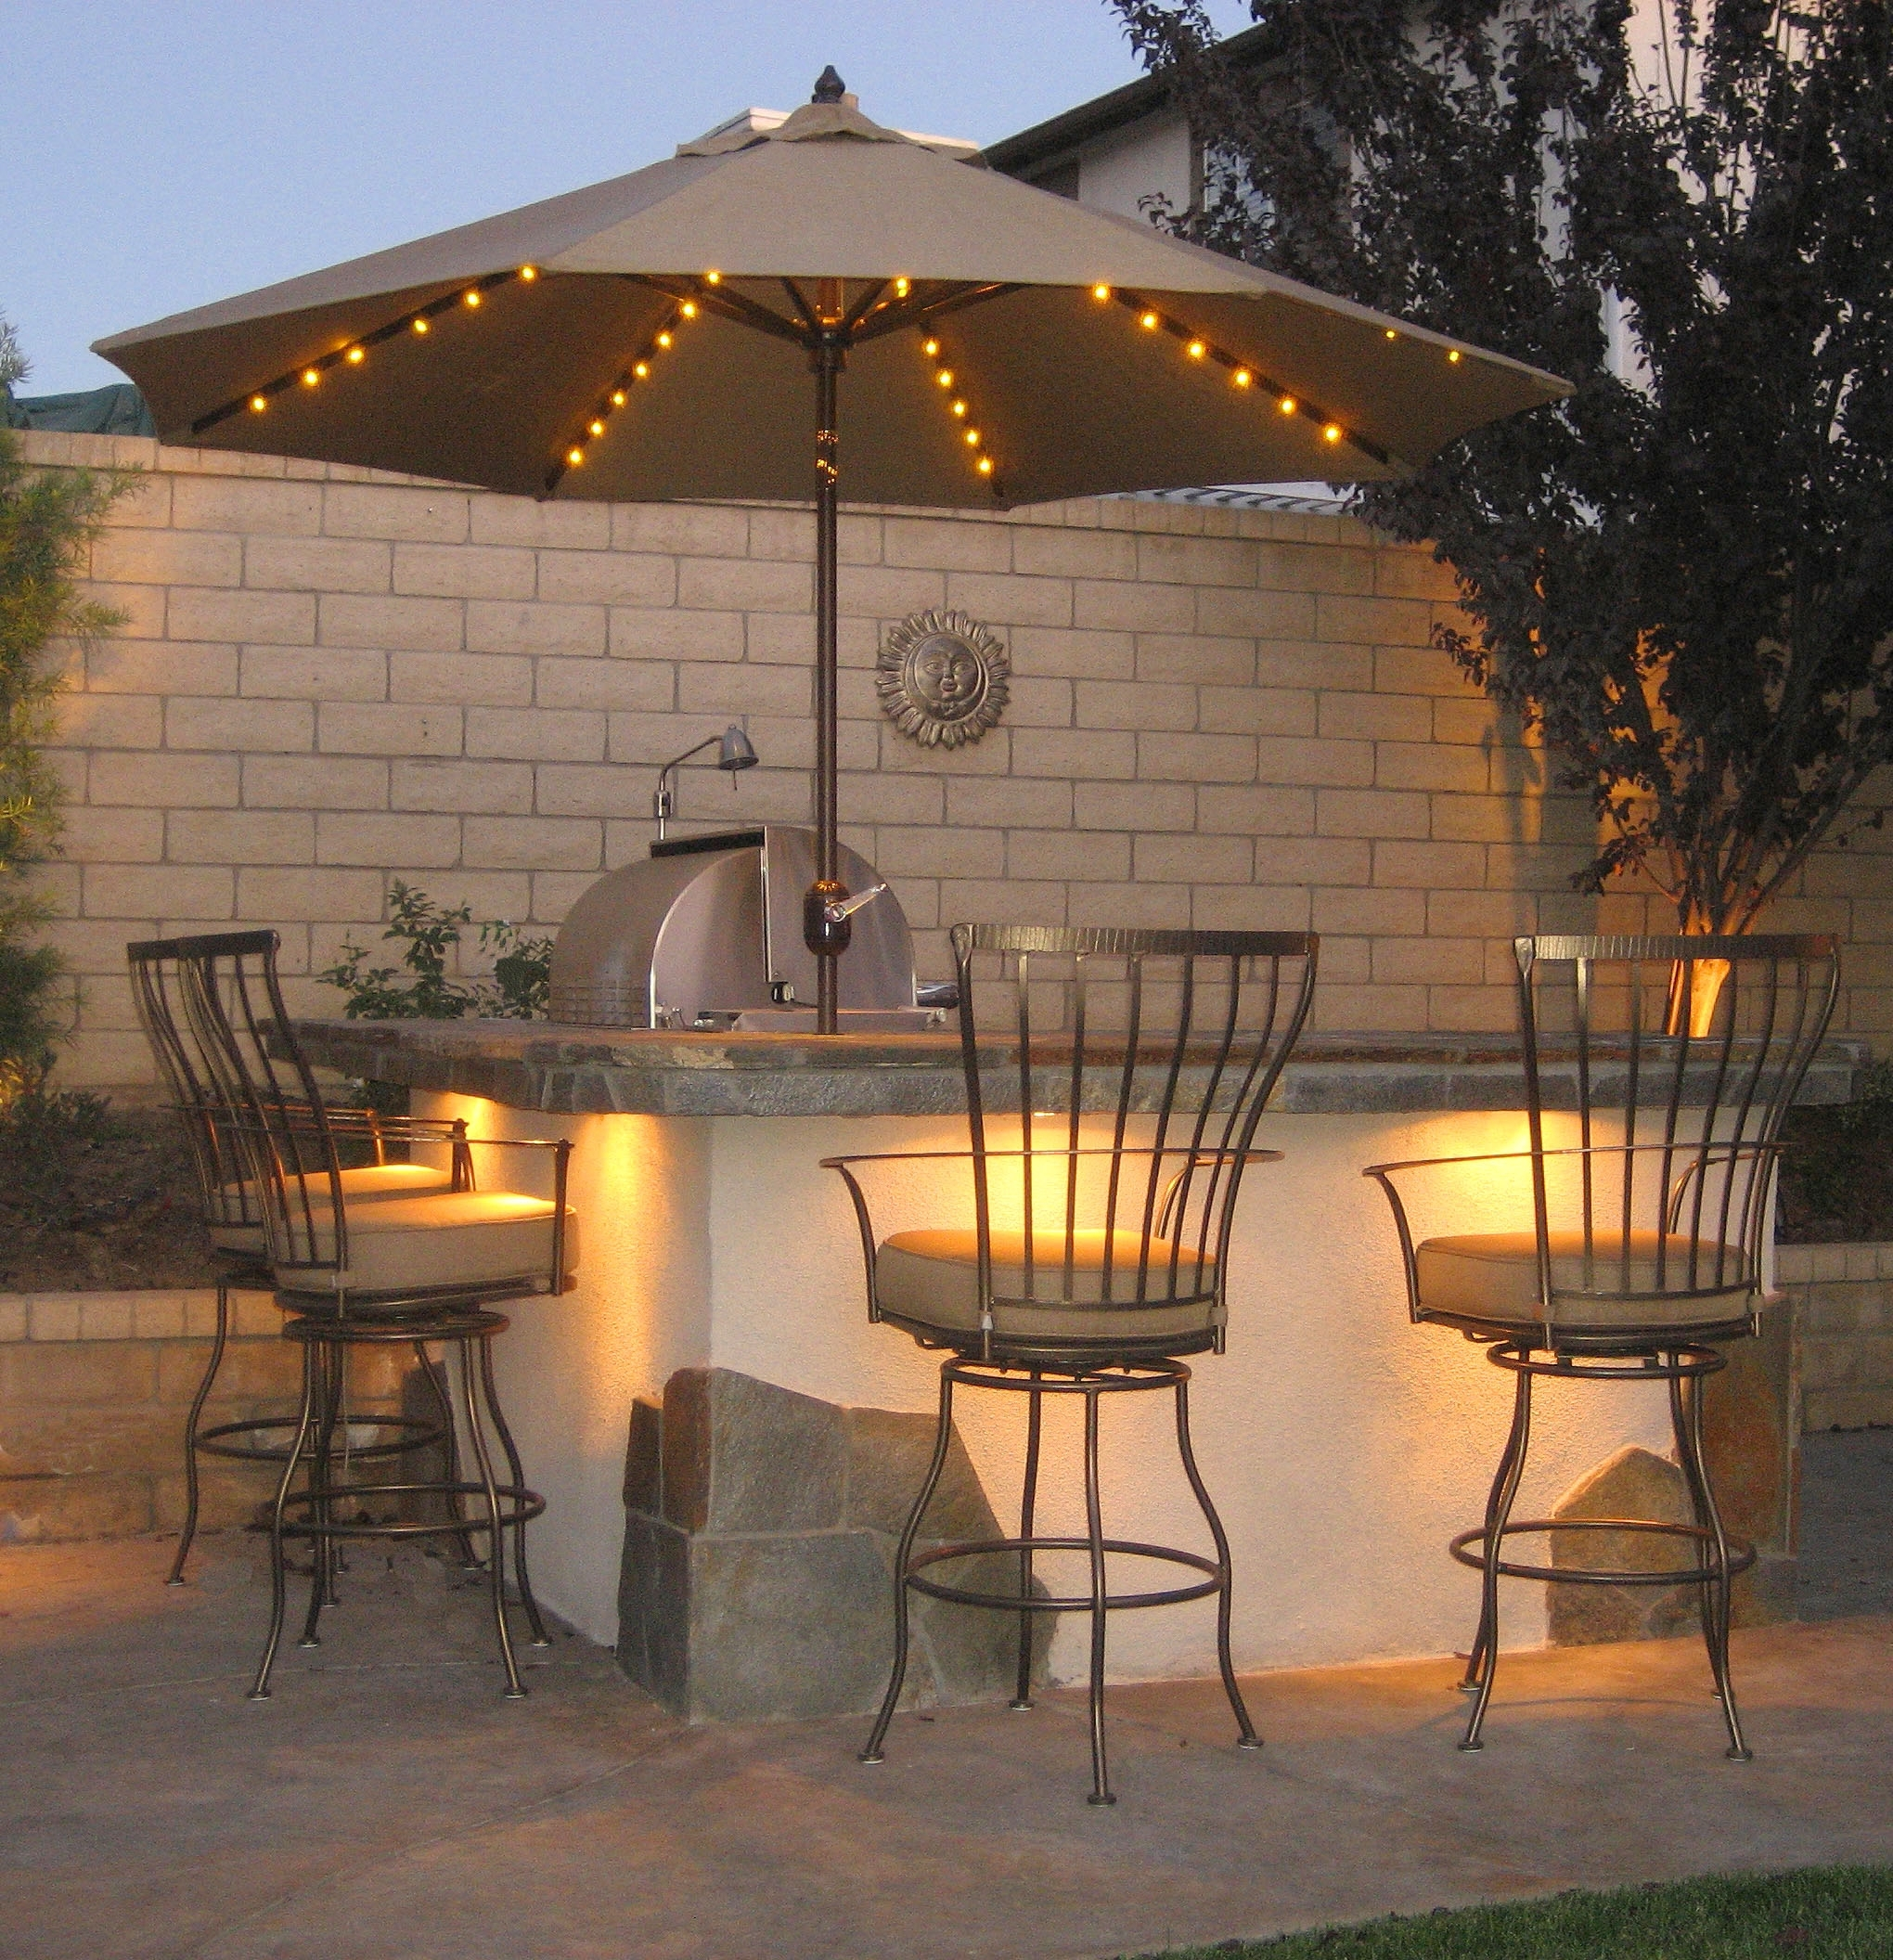 Lights For Patio Umbrella — Mistikcamping Home Design : Different In Recent Outdoor Umbrella Lanterns (Gallery 11 of 20)